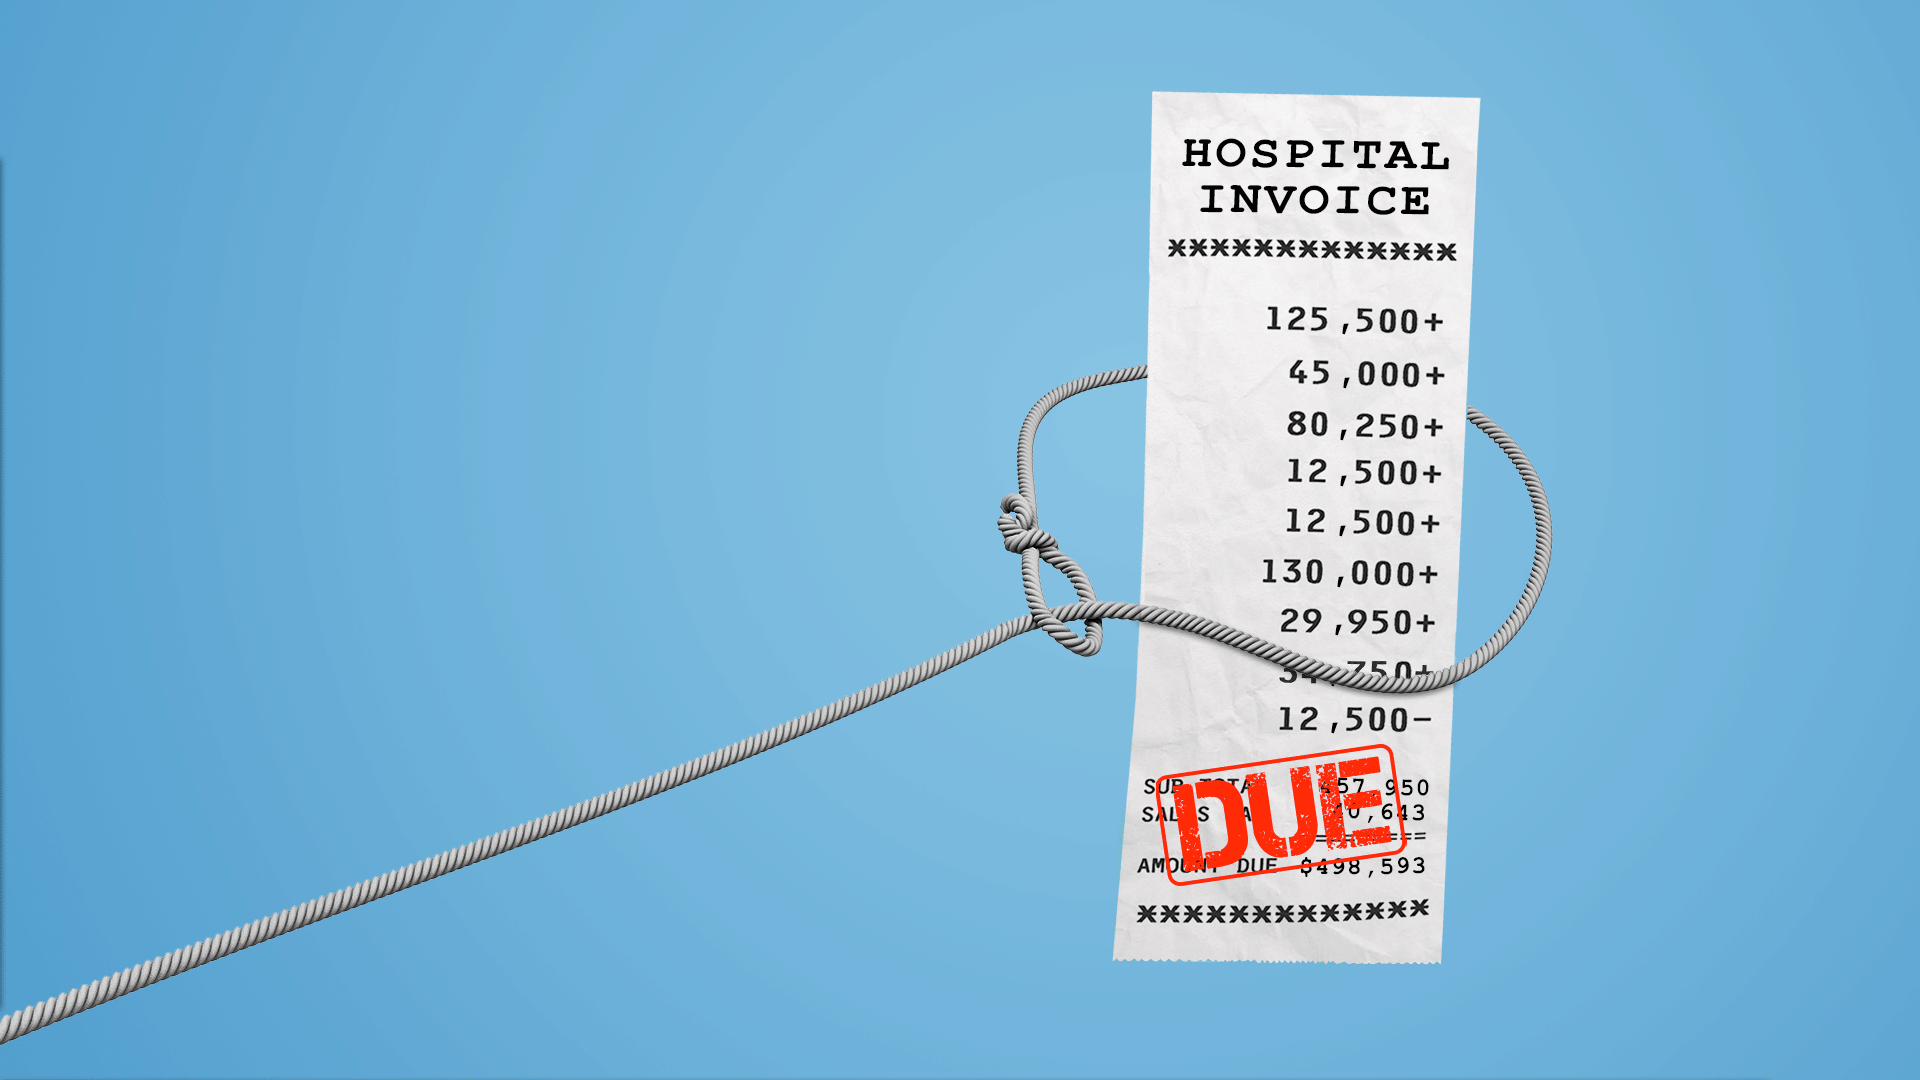 In this illustration, a lasso is pictured around a hospital a bill with a large INVOICE at the bottom of it.